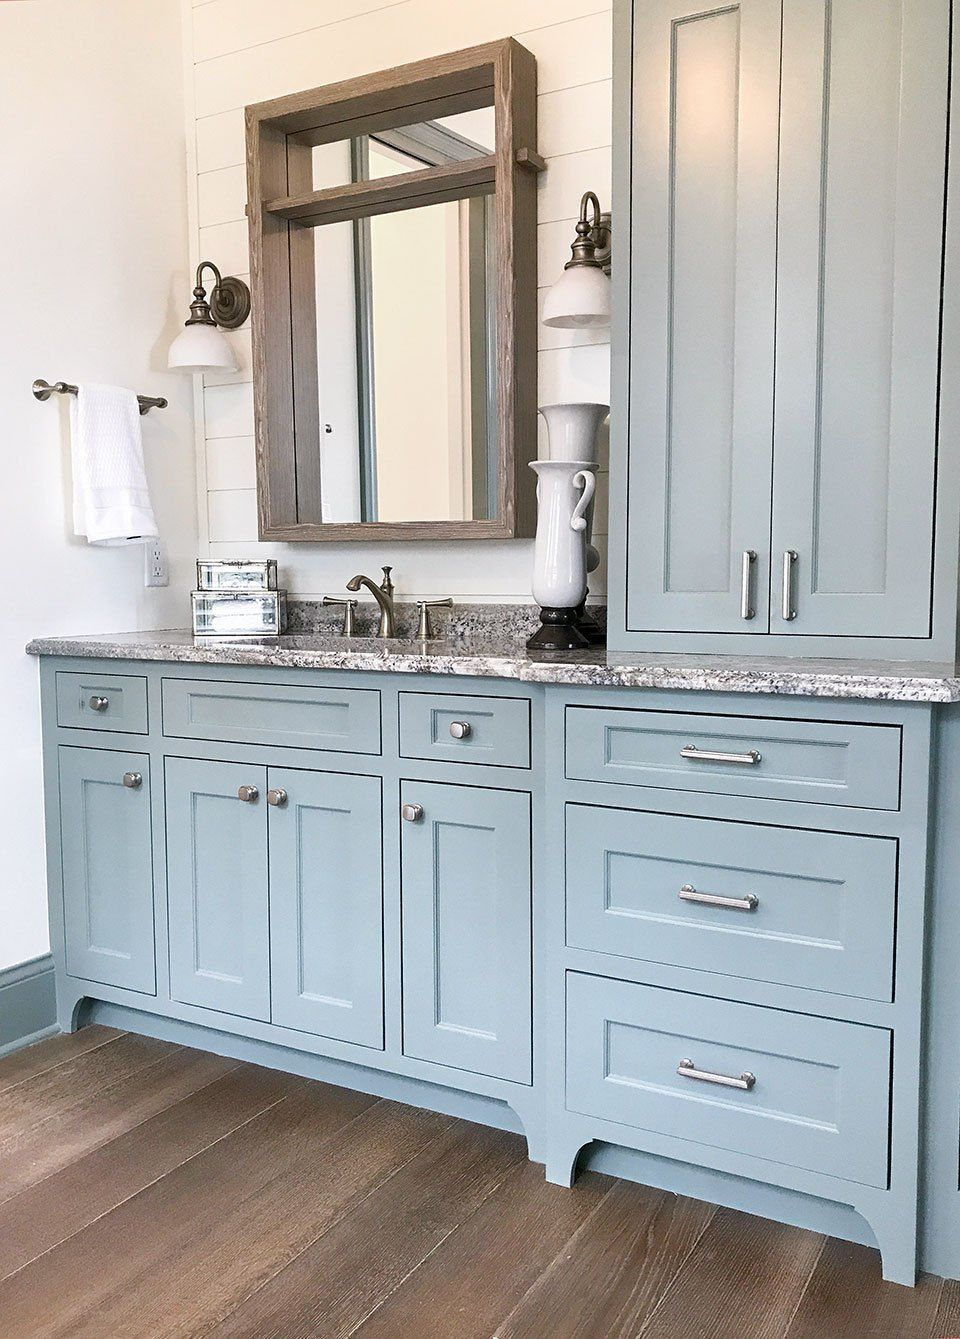 Renovation Salle De Bain Abbeville ~ artisan tour luxury lake cottage bathroom with shiplap and blue